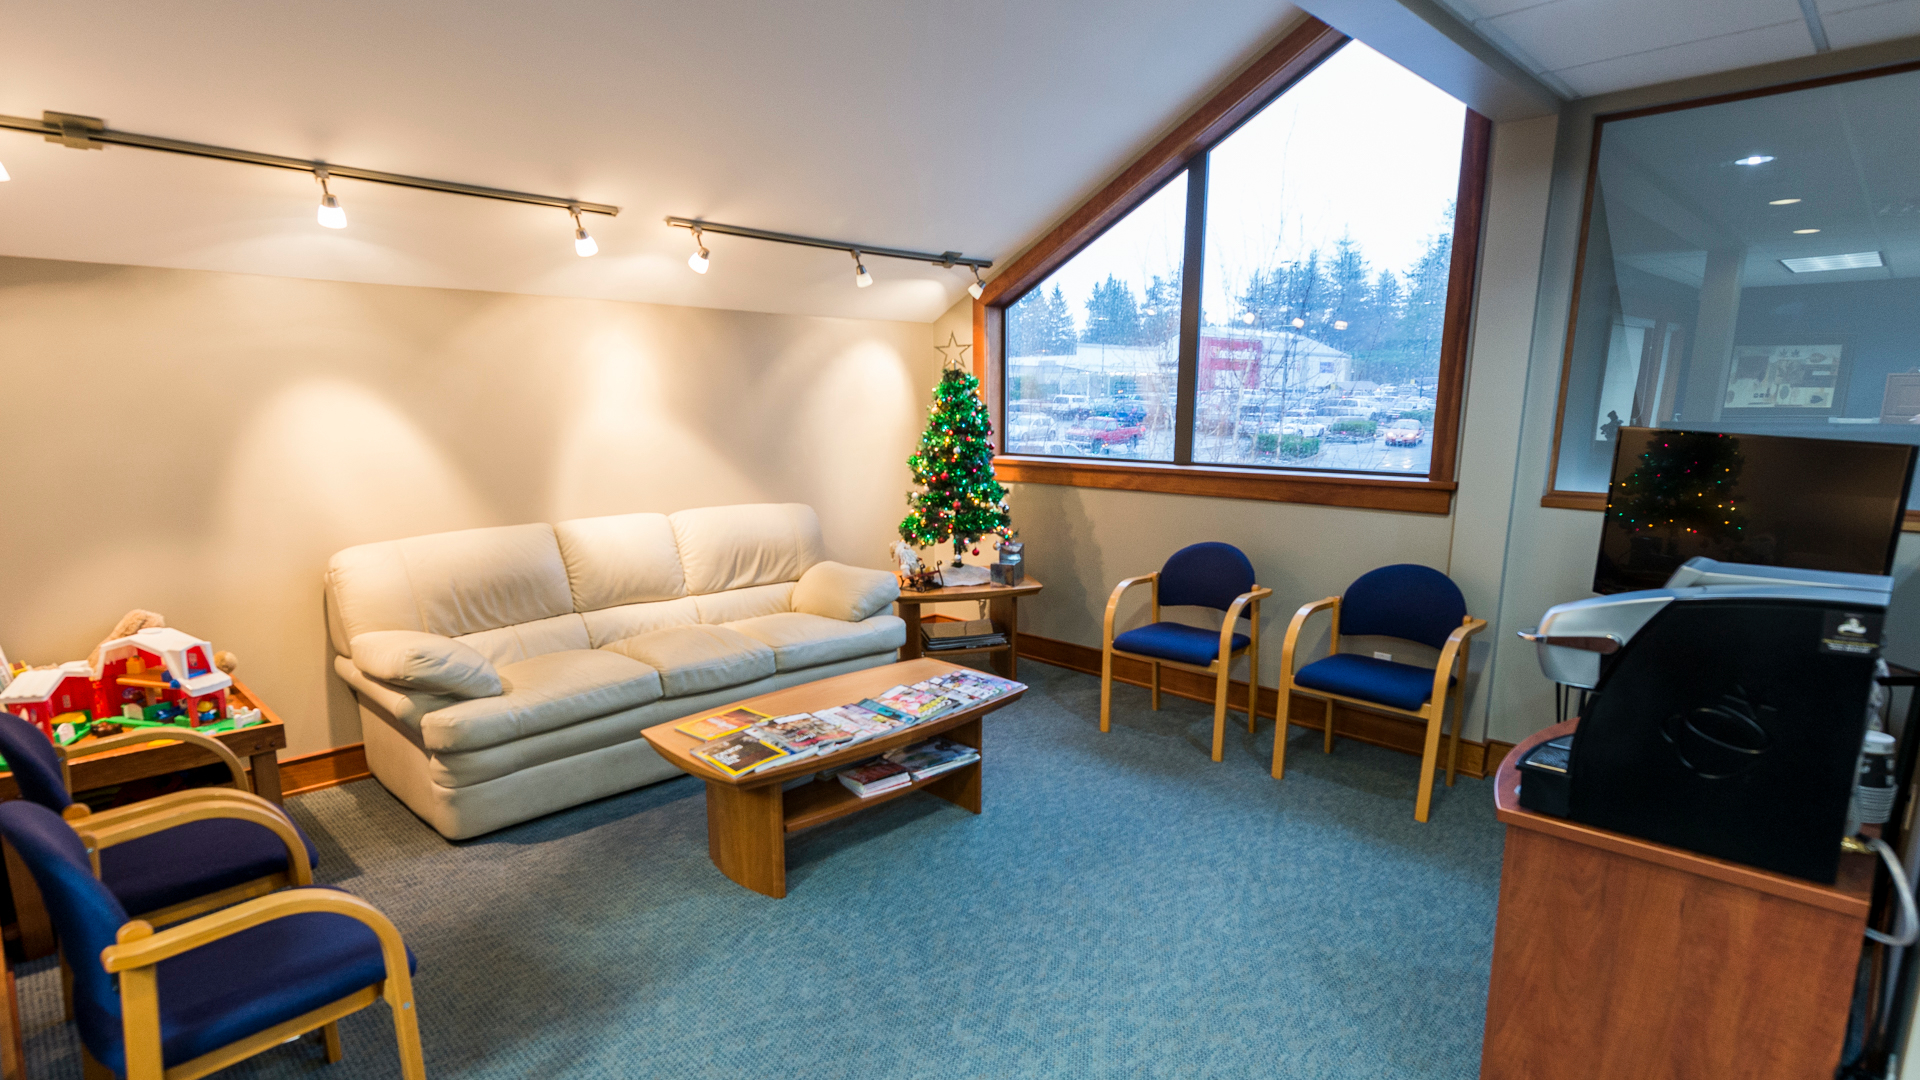 Comox Avenue Dental Centre Comox (250)339-4111